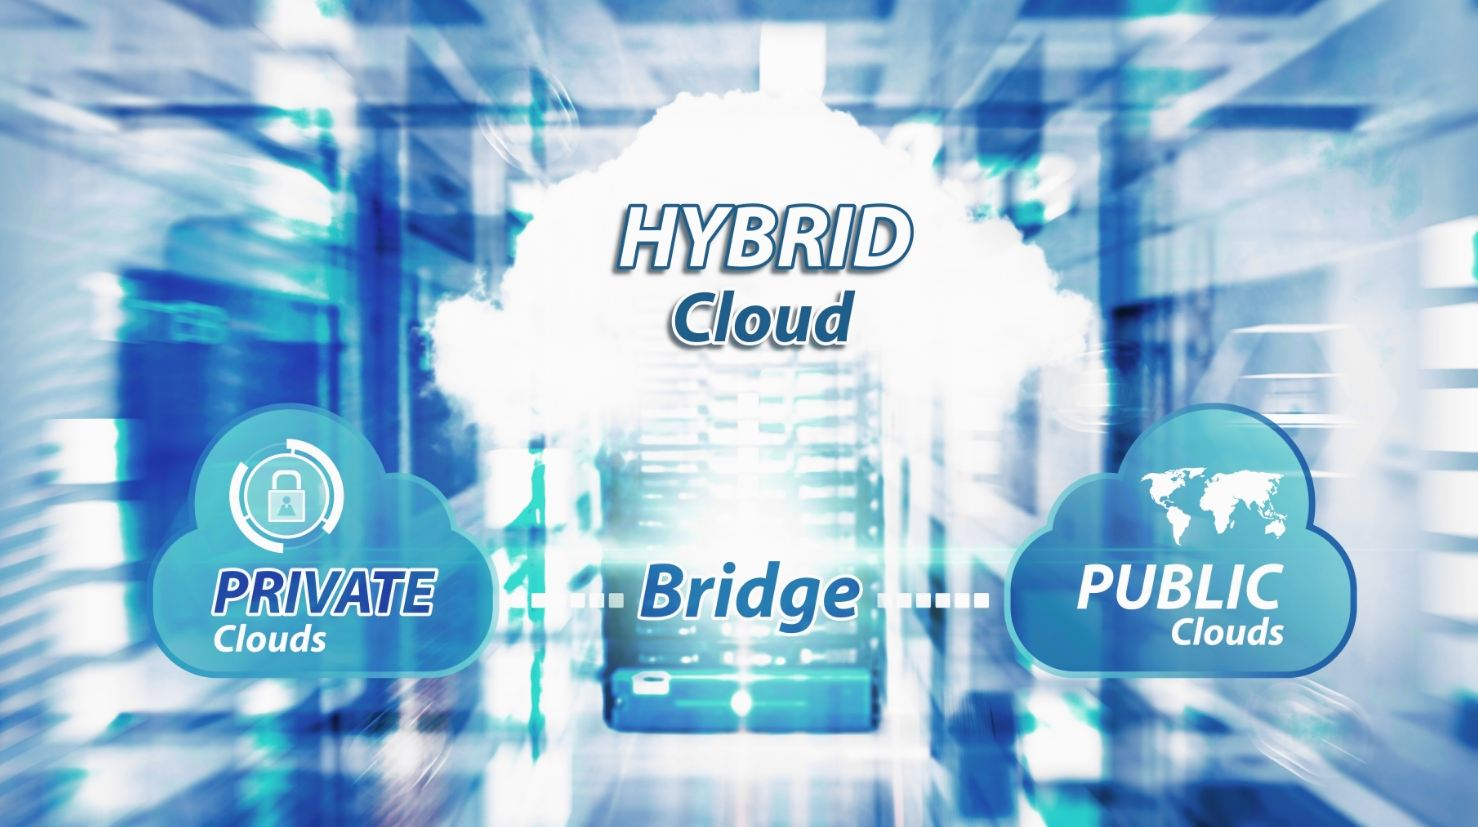 Hybrid Cloud Security Solutions for Small Business